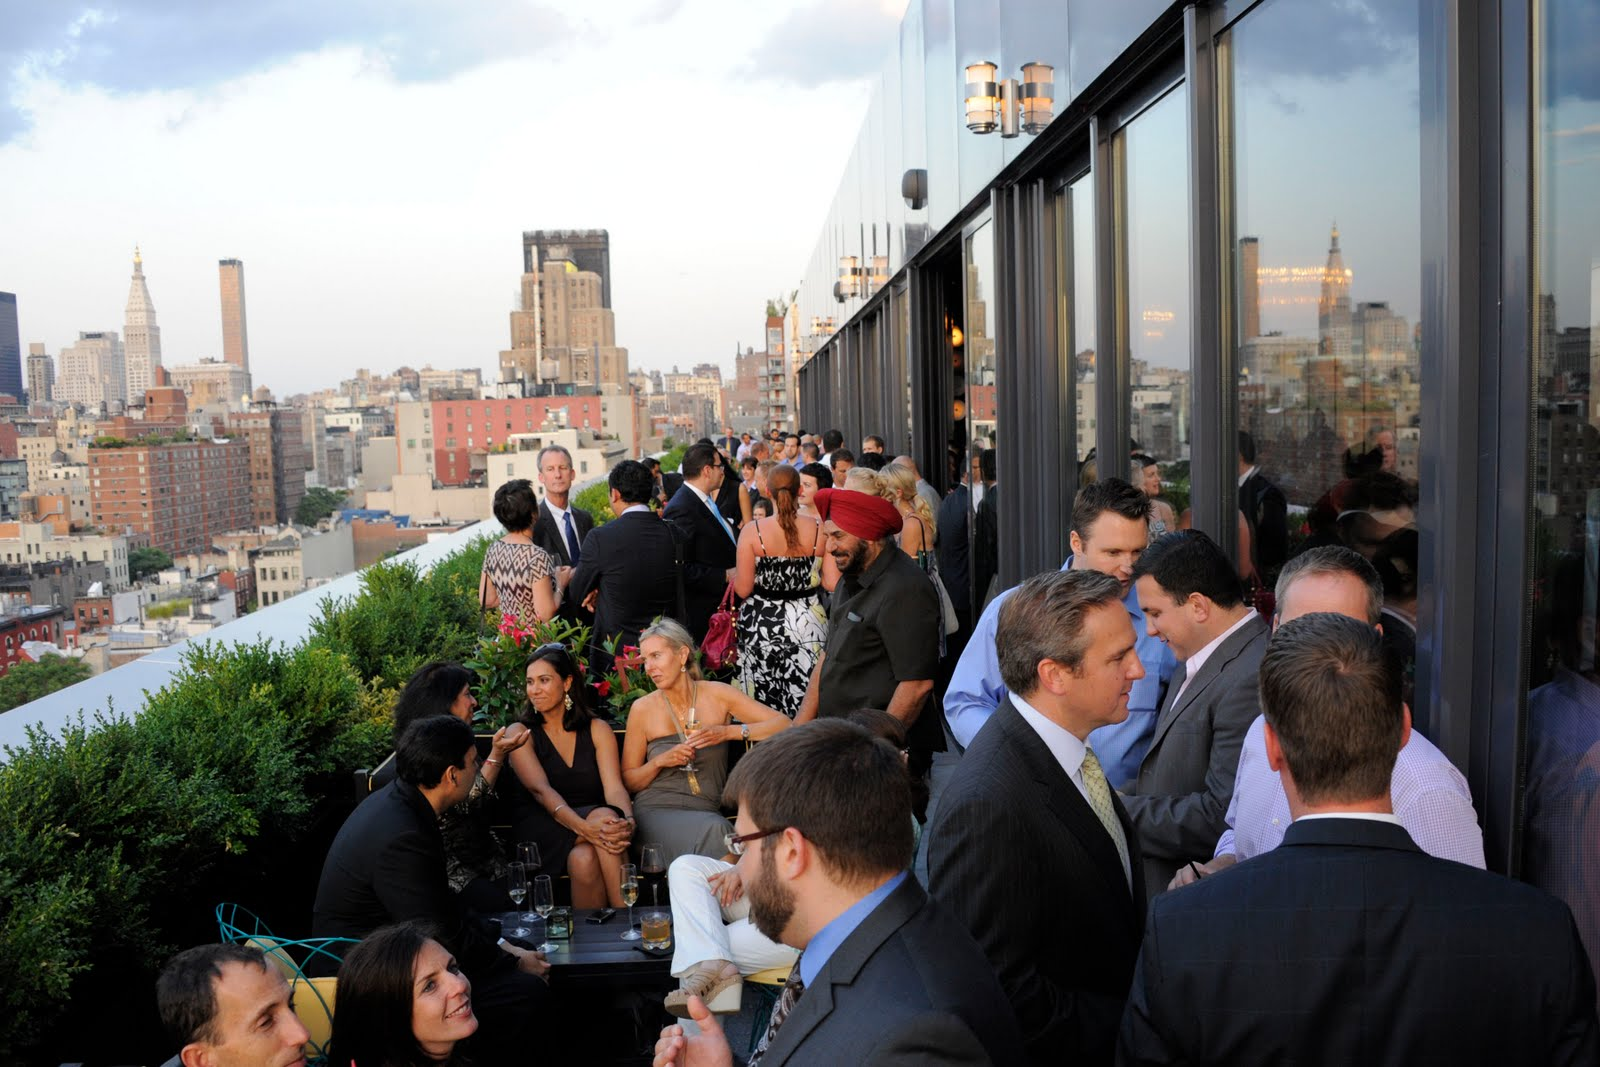 Dream Downtown  Top 10 New Year's Eve Parties in New York ITL 2B  2BDream 2BHotel 2B3